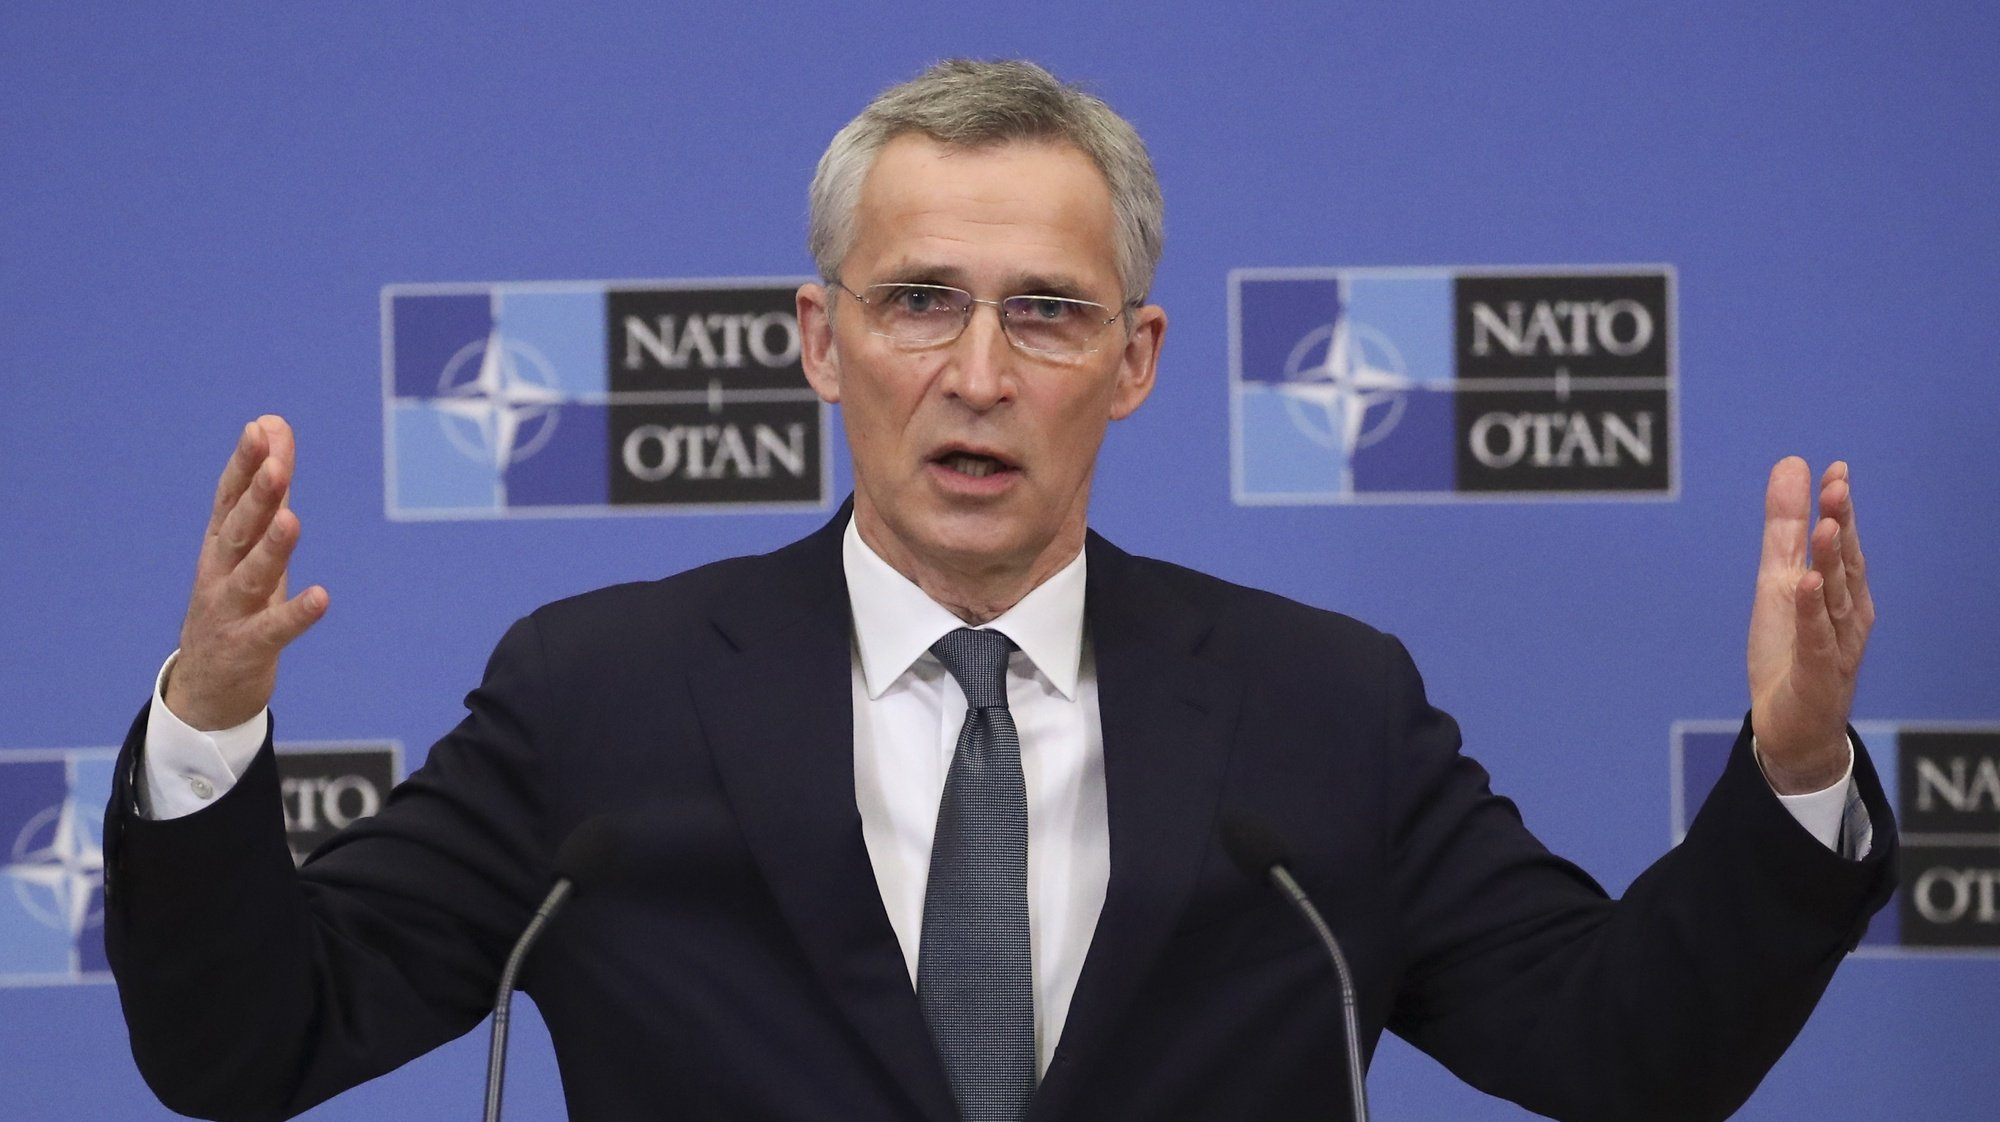 epa09077636 NATO Secretary General Jens Stoltenberg presents the Alliance's 2020 annual report during a news conference in Brussels, Belgium, 16 March 2021.  EPA/YVES HERMAN / POOL